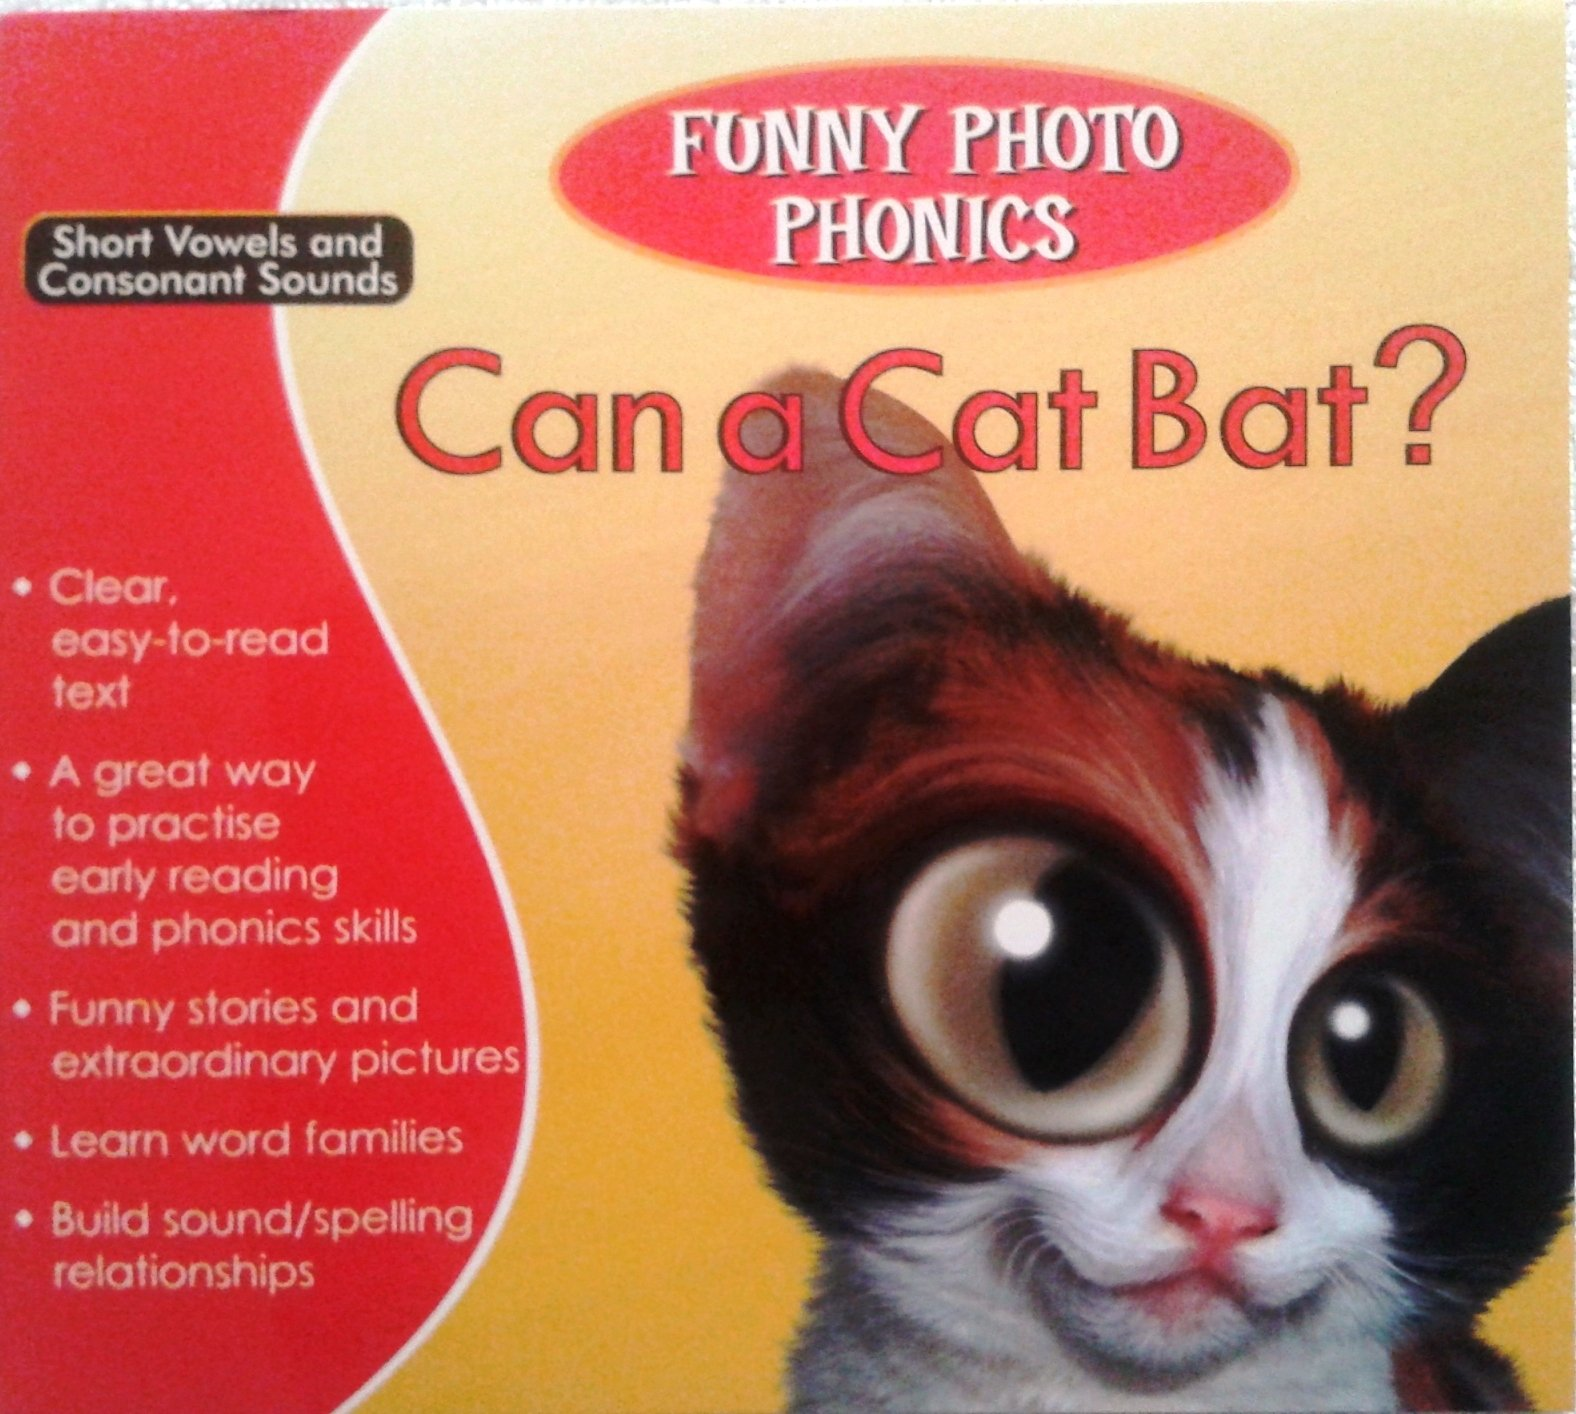 Funny Photo Phonics Short Vowels And Consonant Sounds Vol. 1 To 5